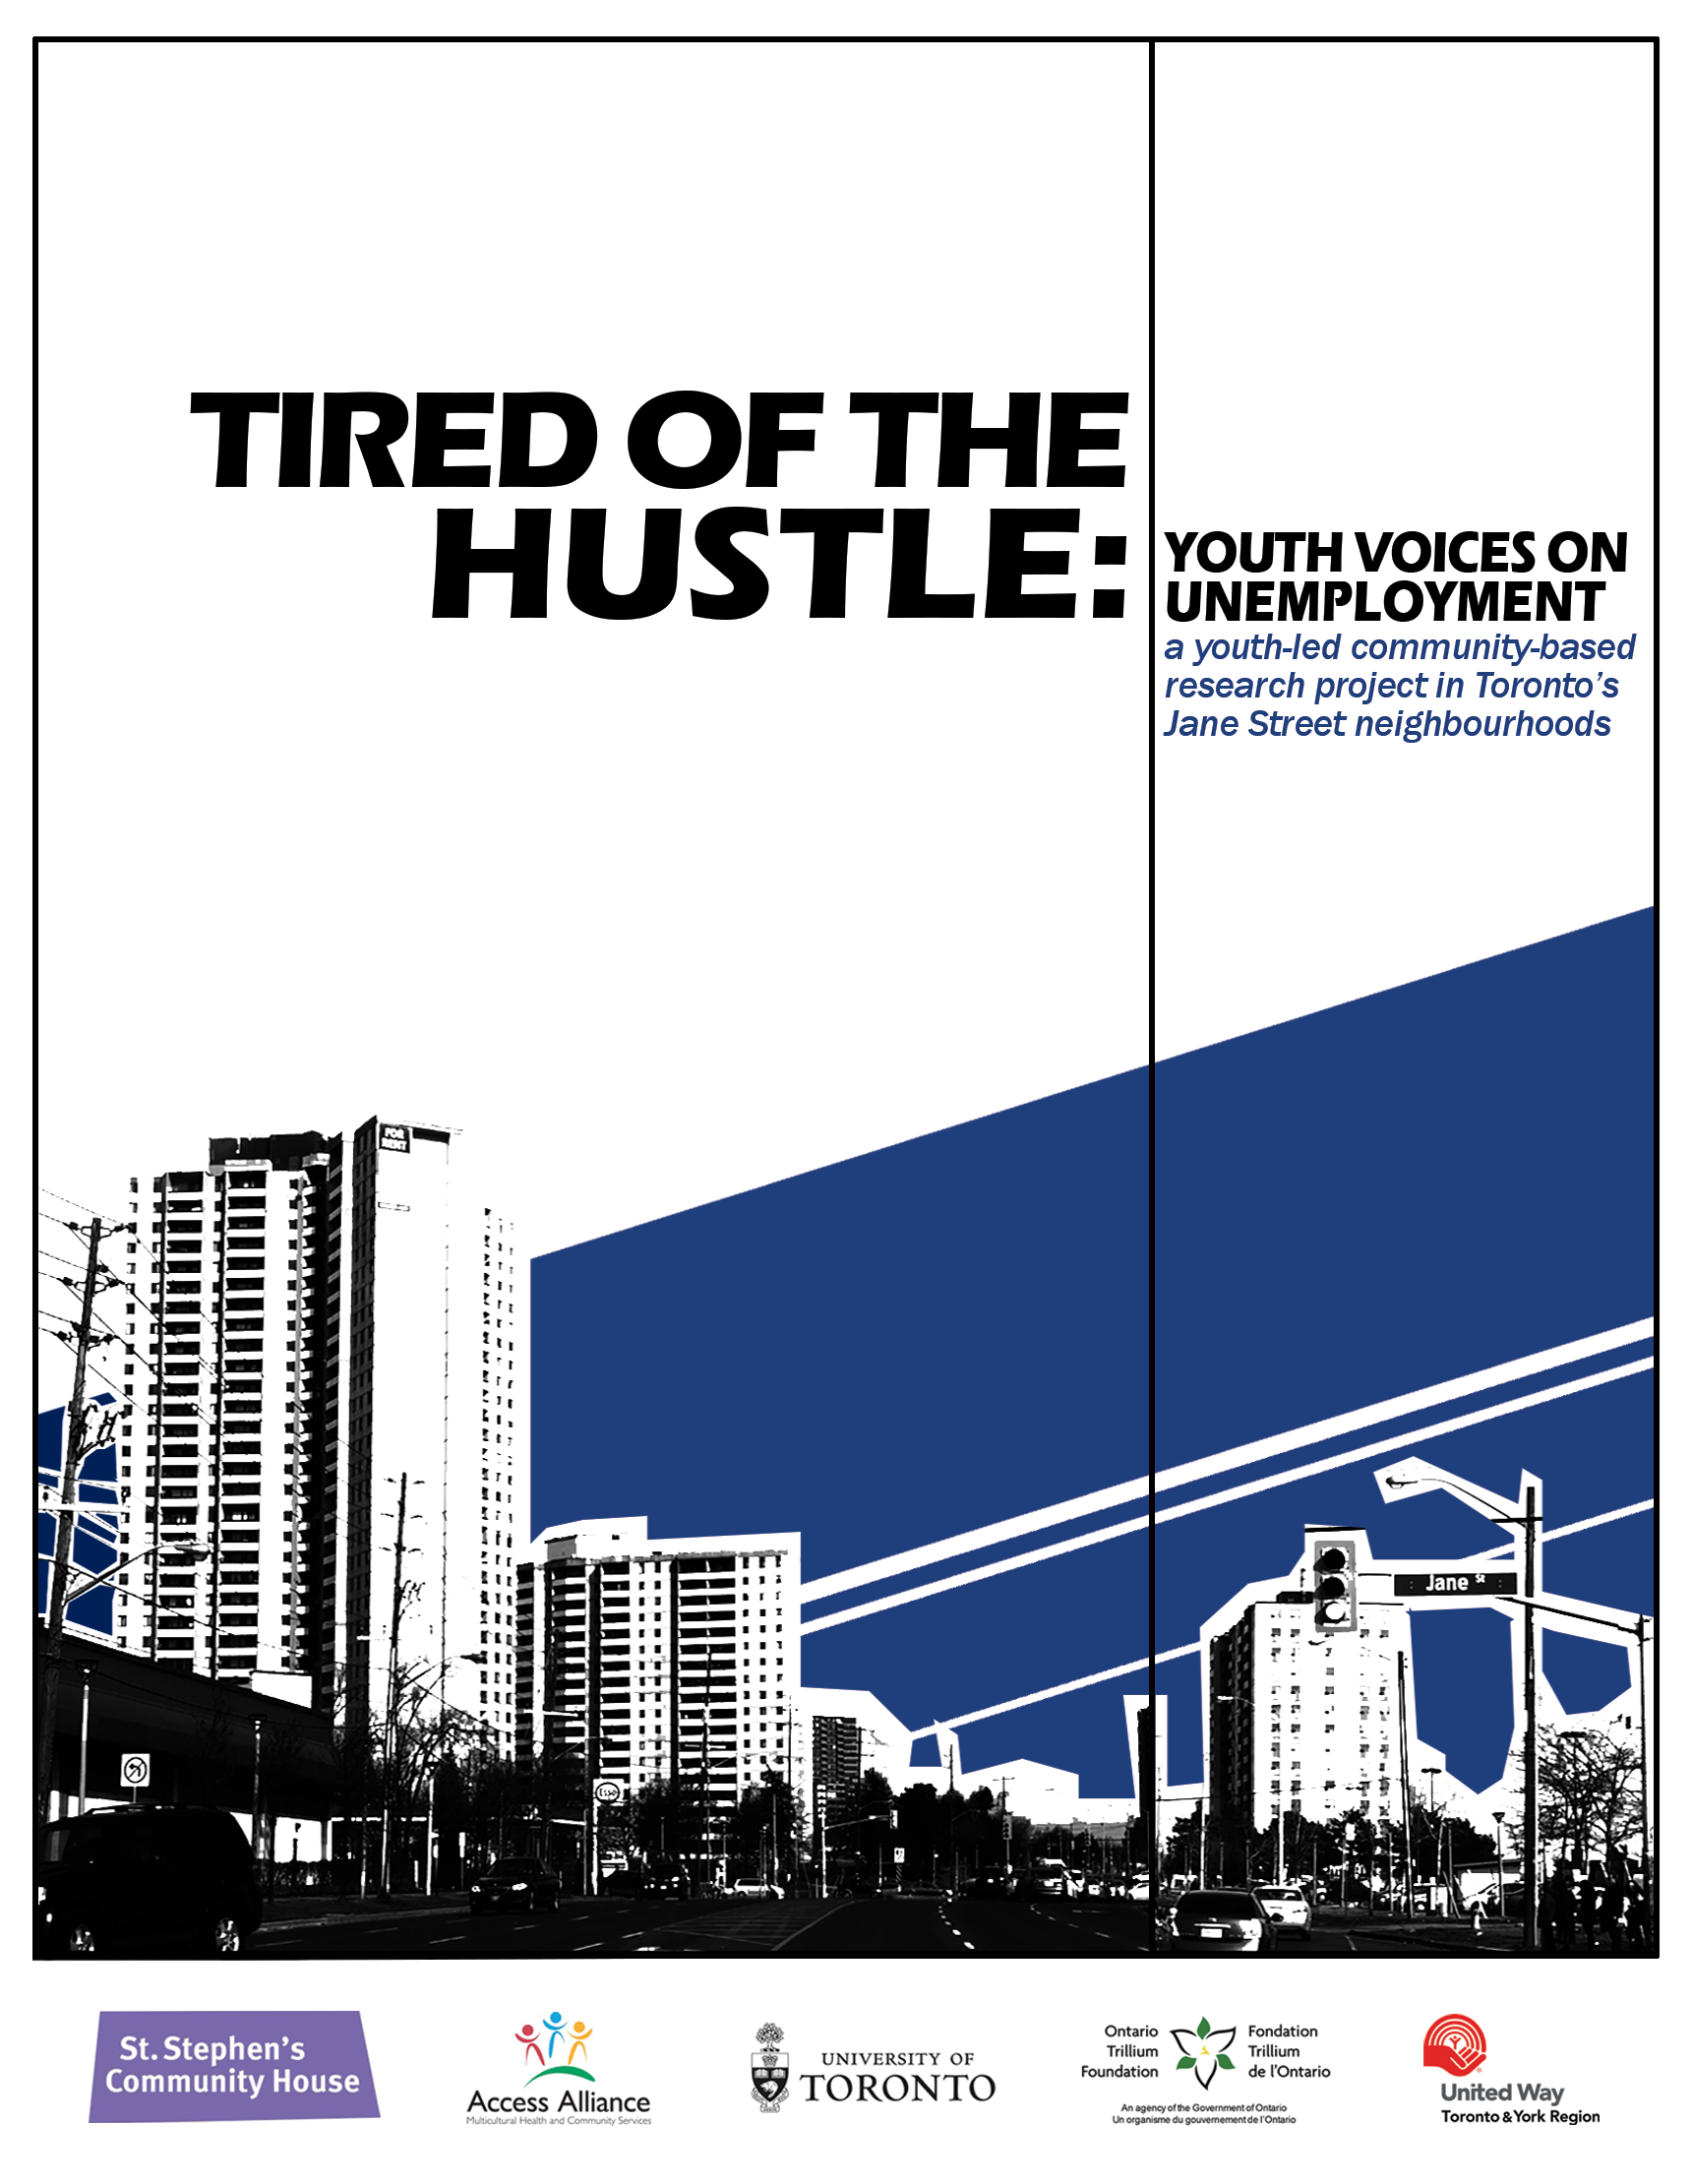 Tired of the Hustle: a report on youth unemployment in Jane Street neighbourhoods